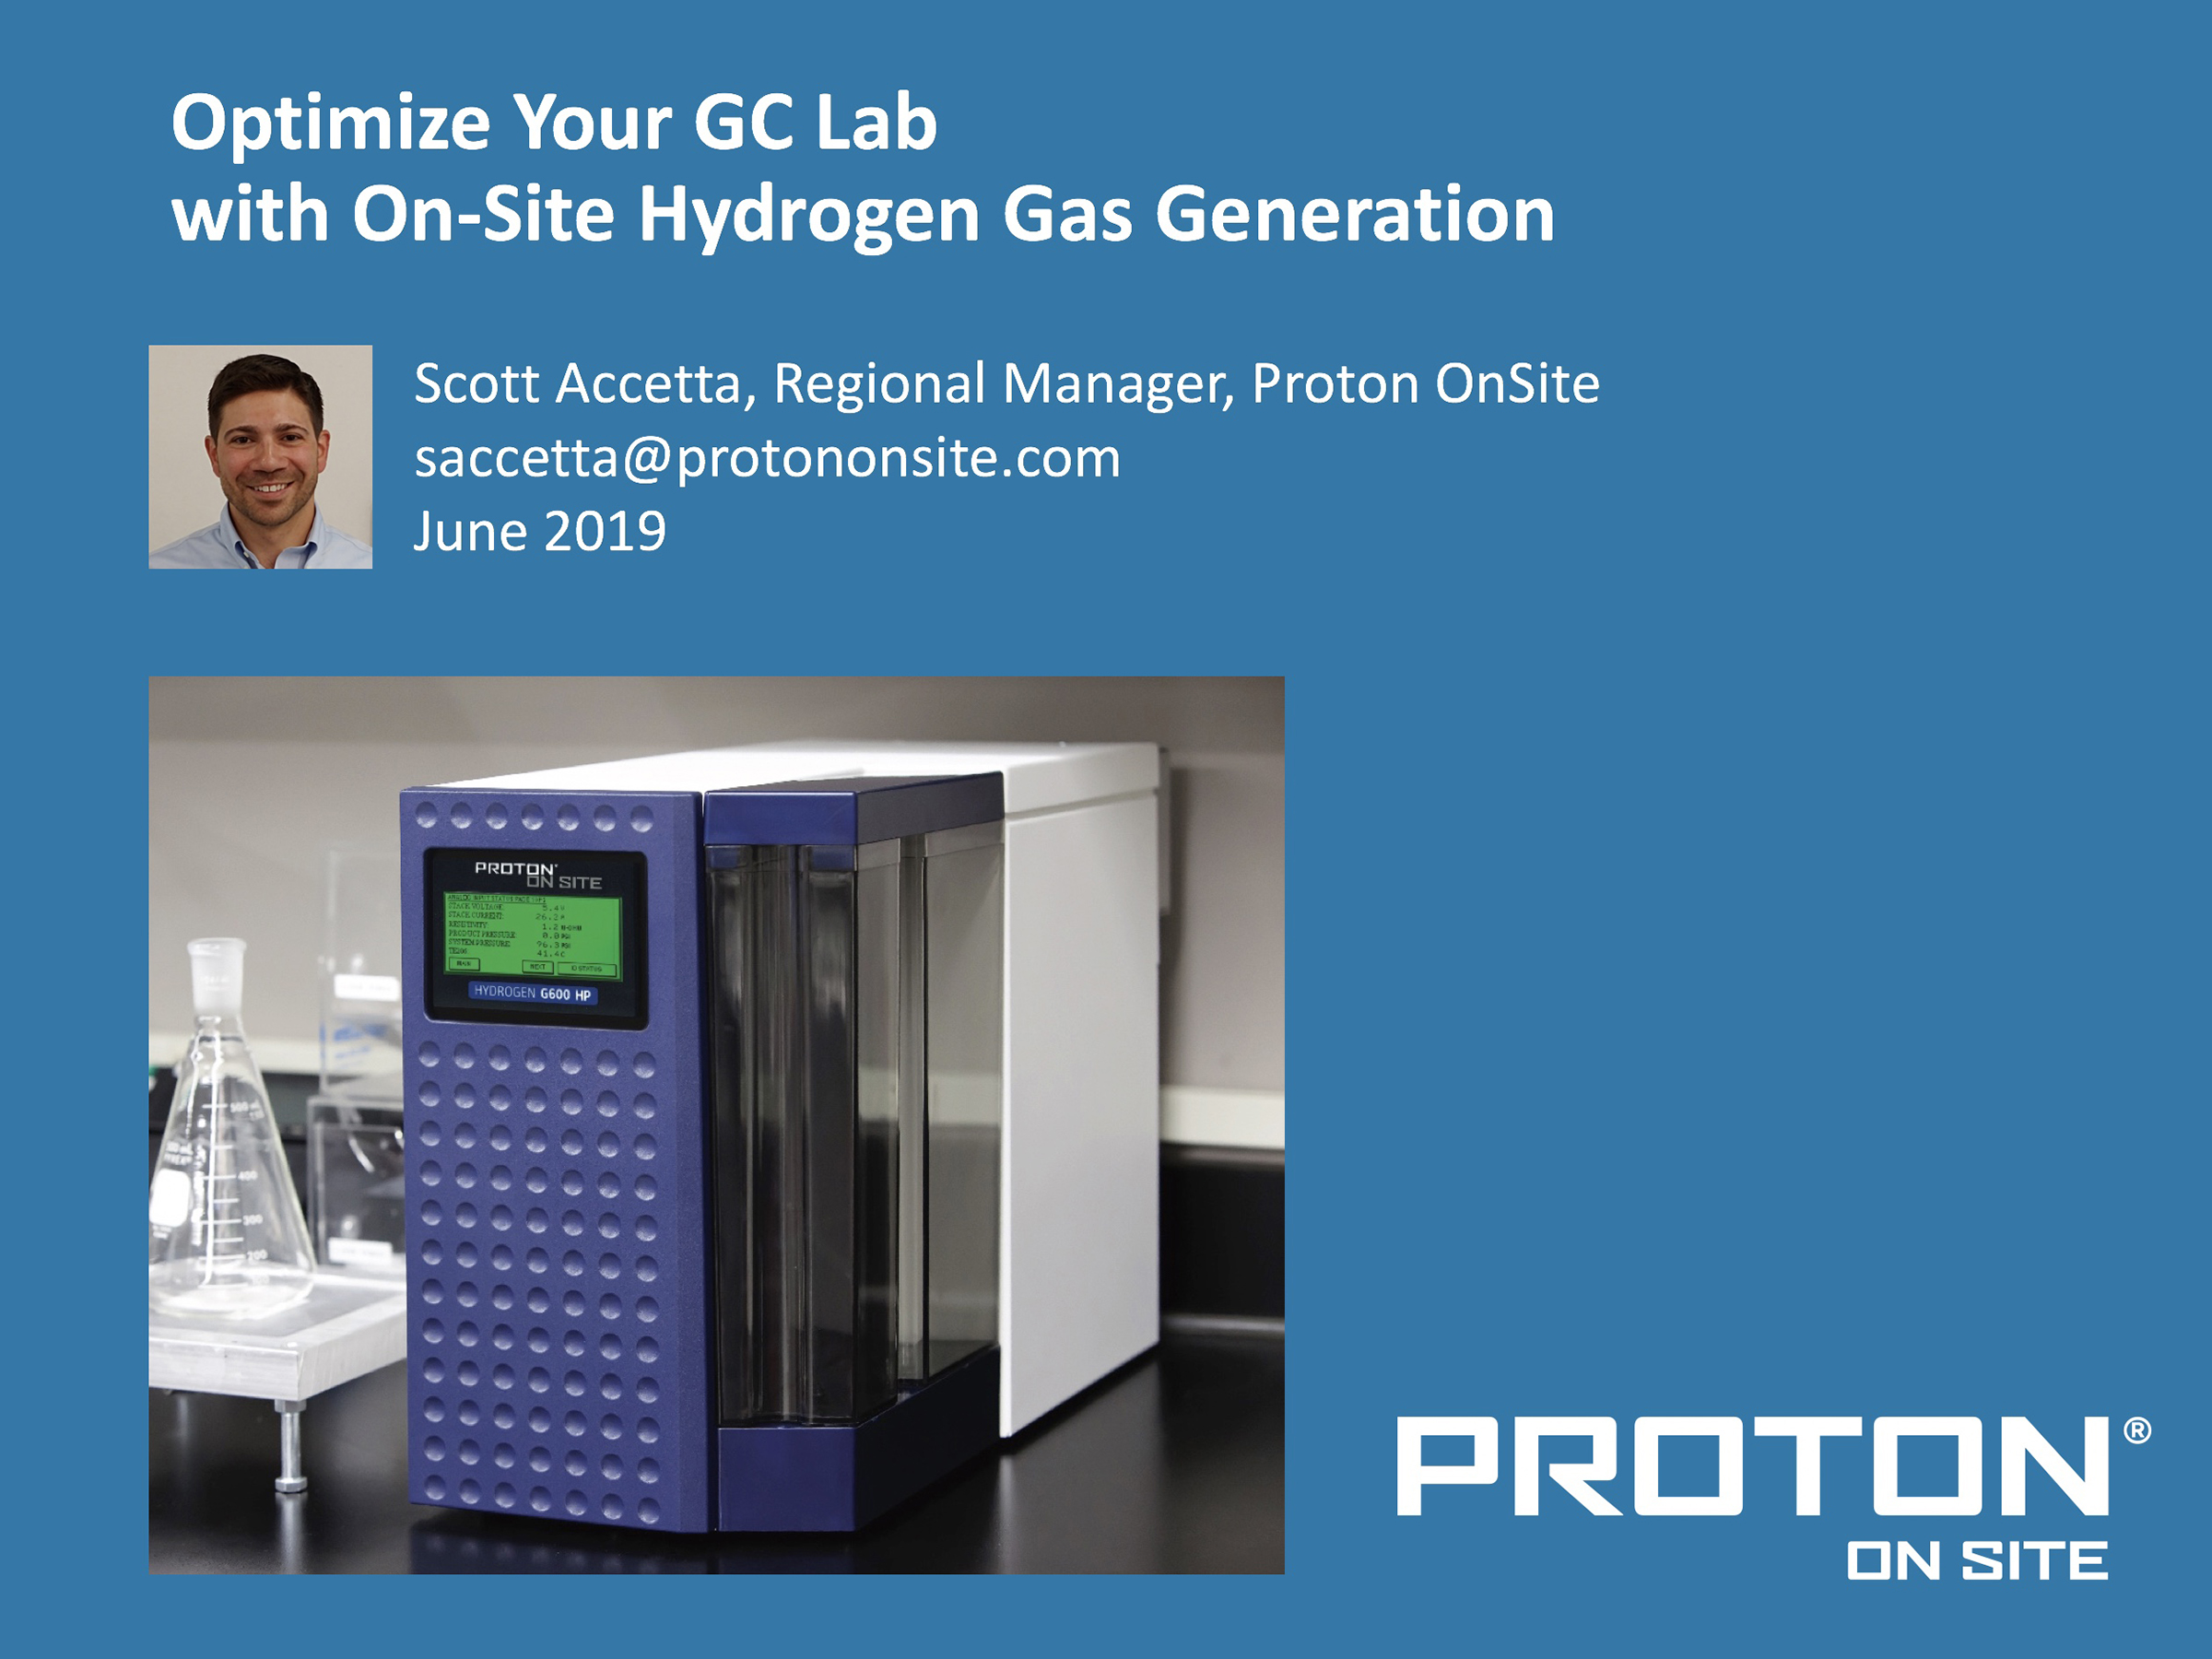 Optimize Your GC Lab with On-Site Hydrogen Gas Generation